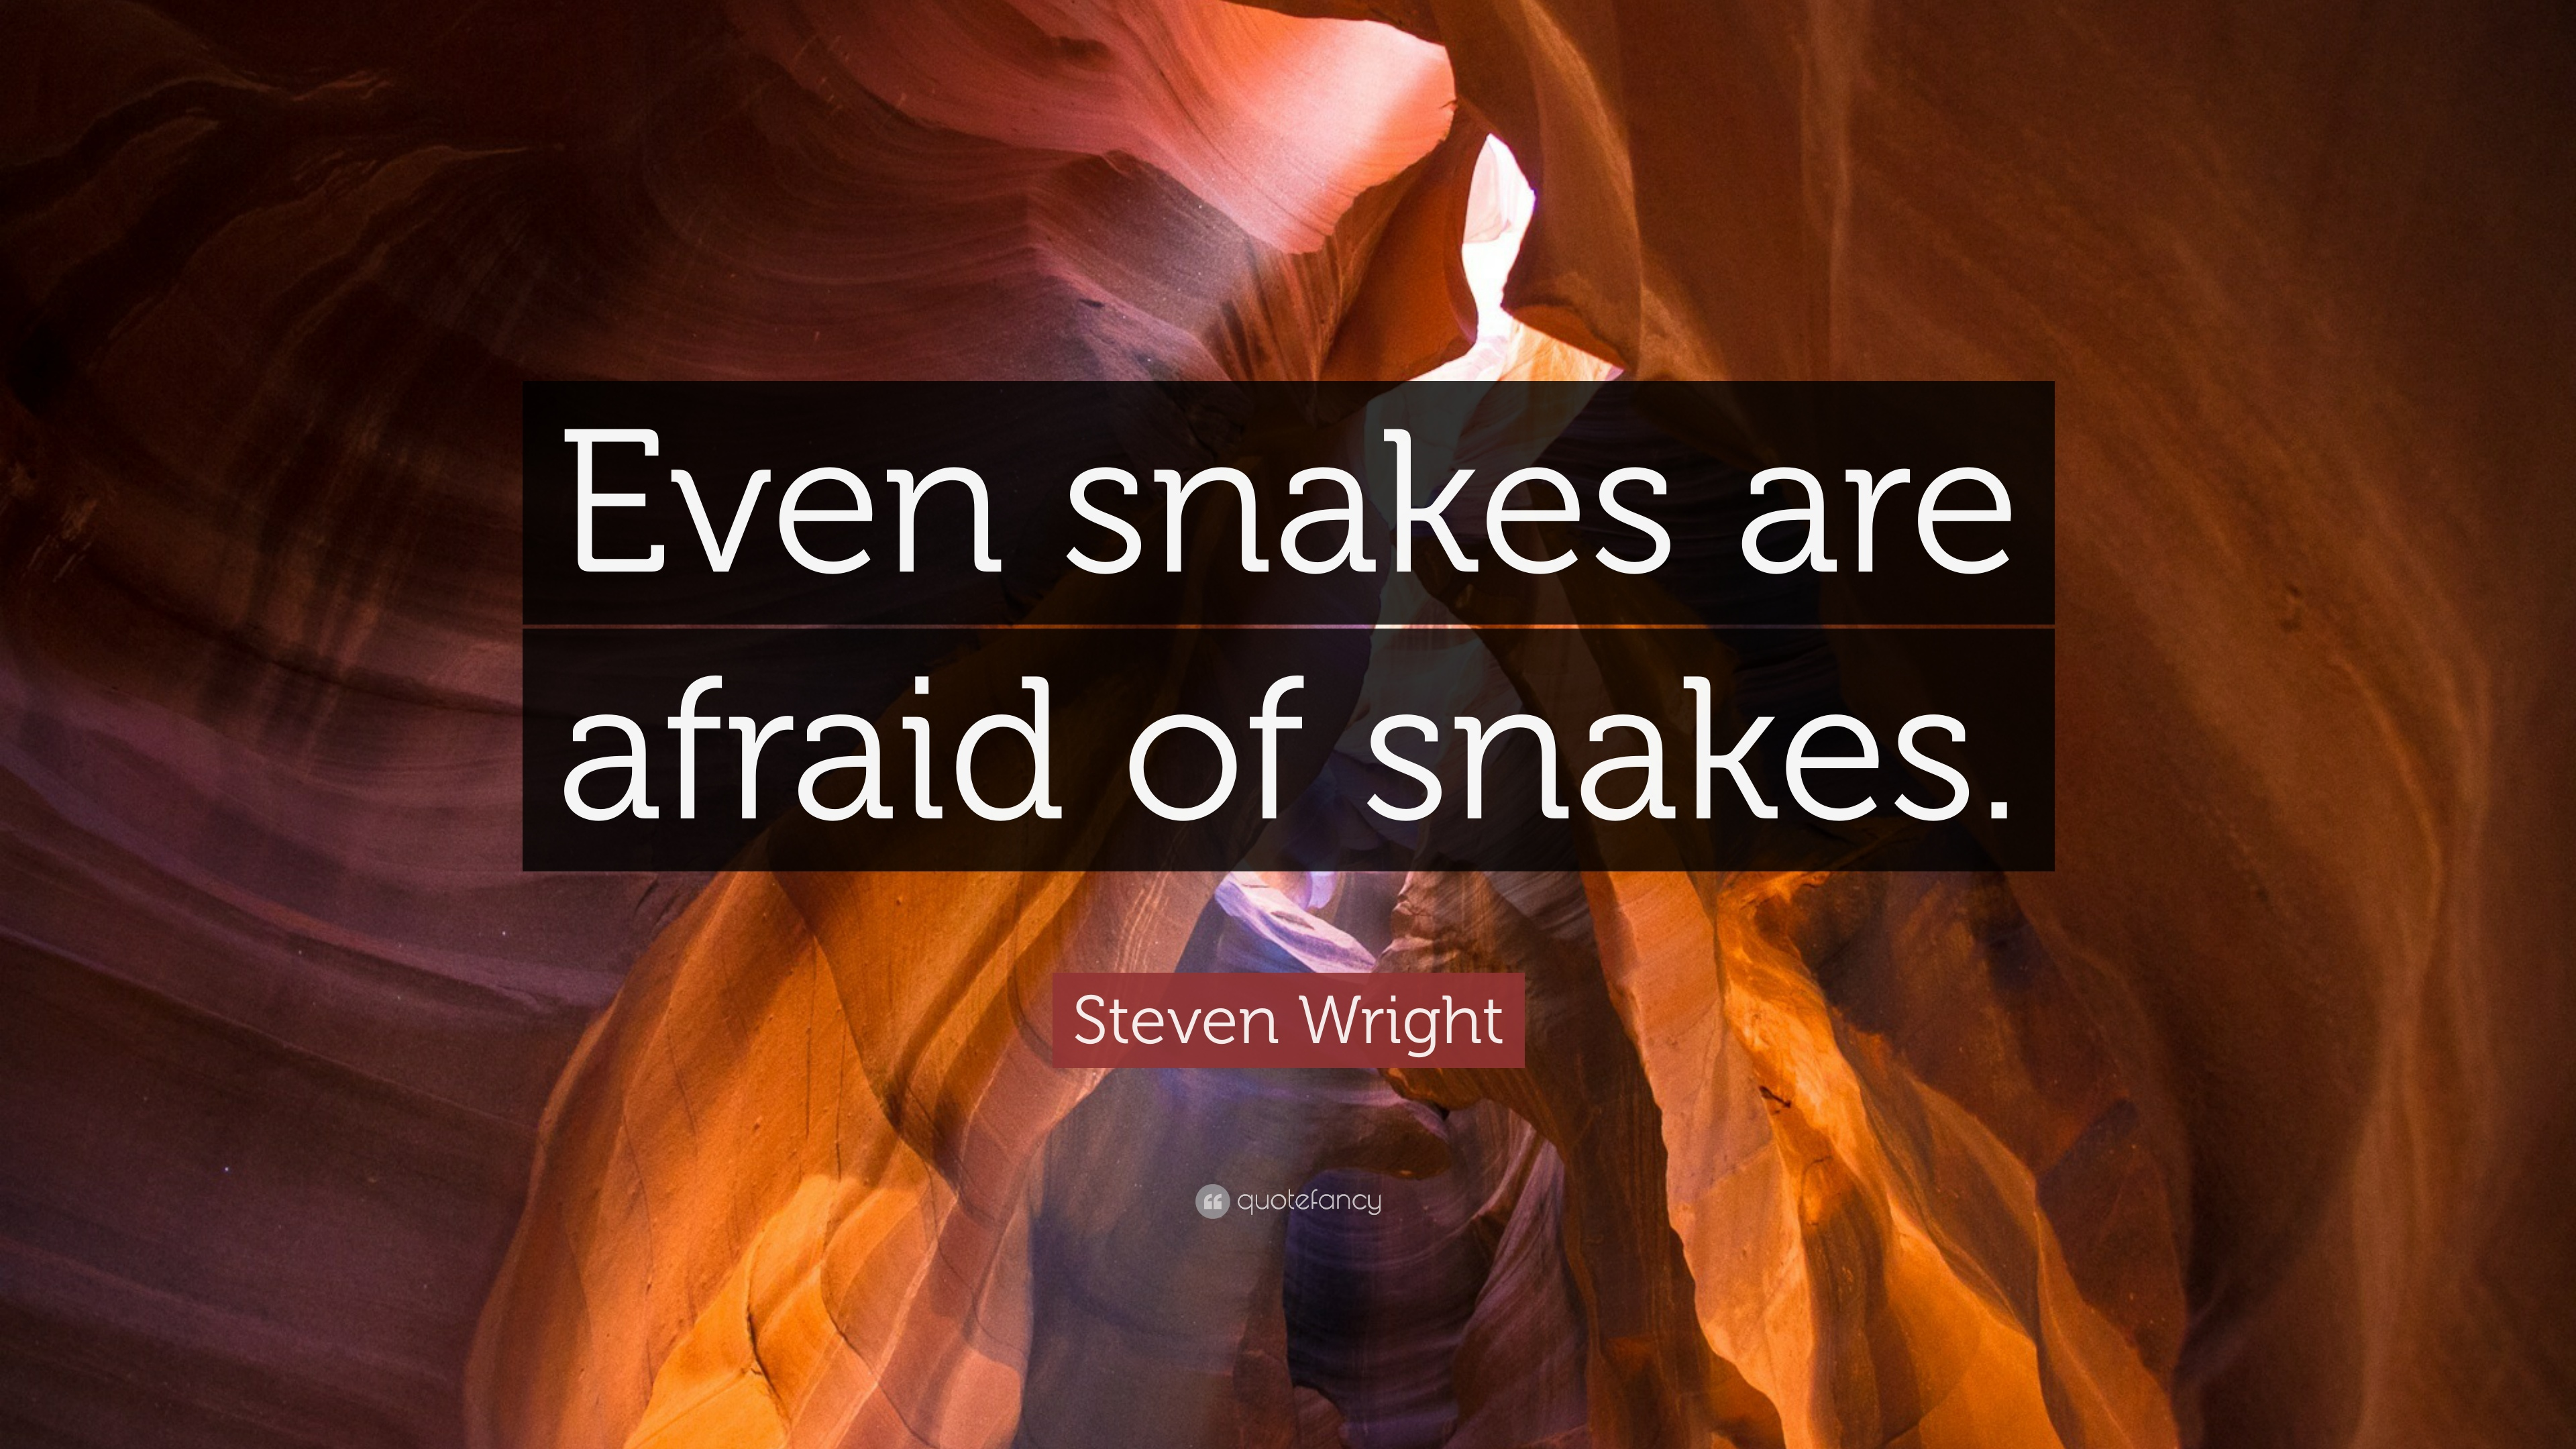 What are the snakes afraid of